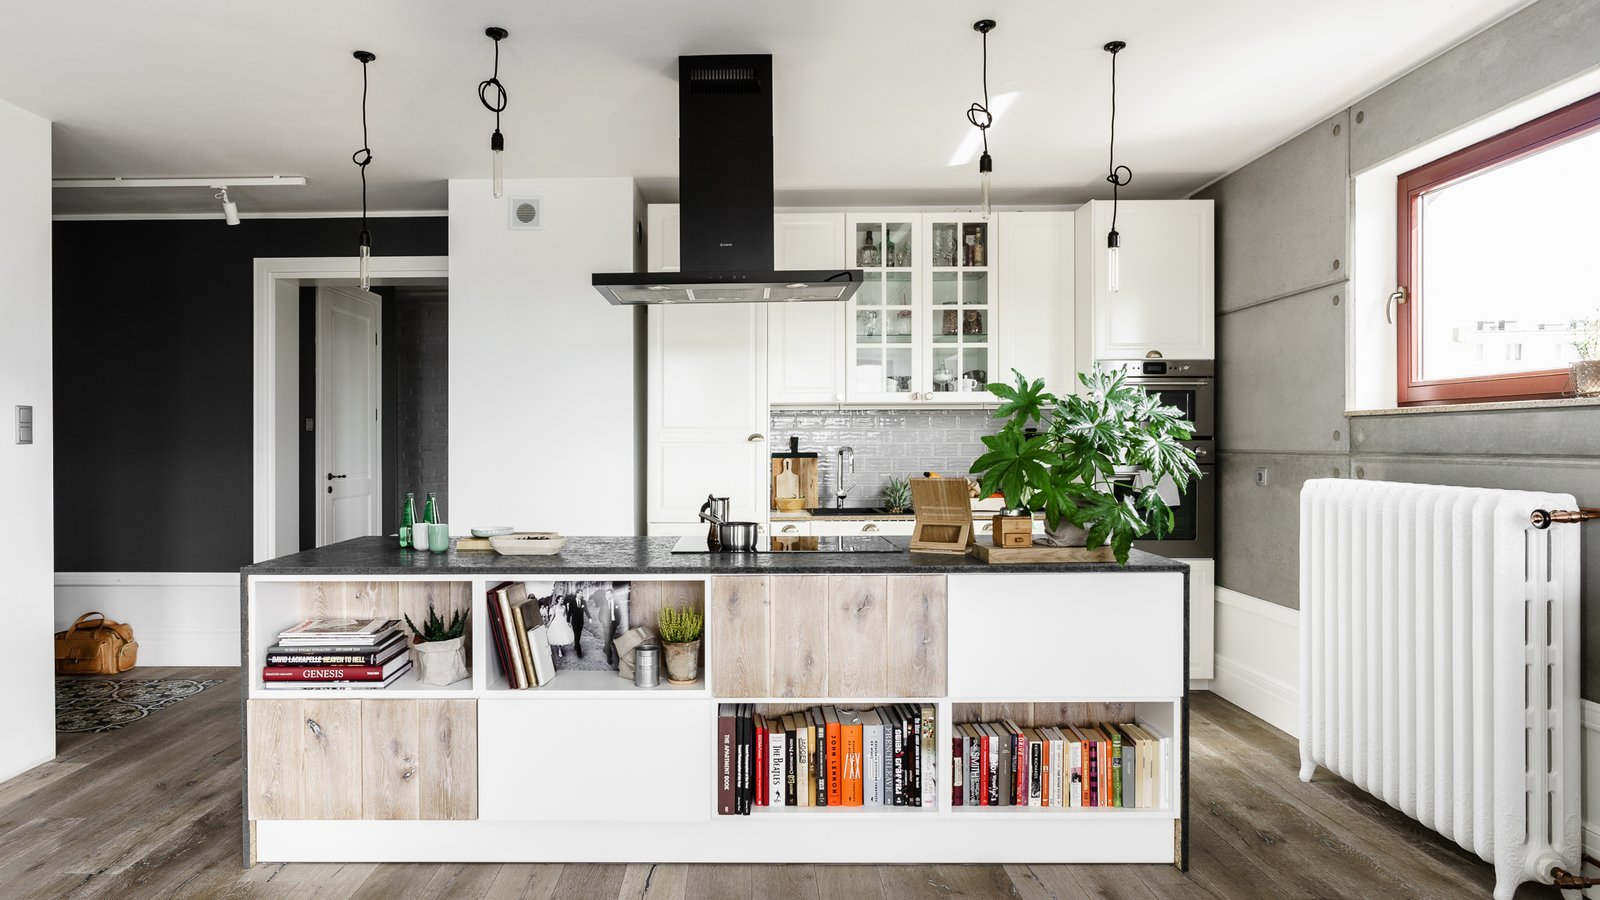 Tagged: Kitchen, Medium Hardwood Floor, Granite Counter, Glass Tile Backsplashe, White Cabinet, Cooktops, Pendant Lighting, Range Hood, and Subway Tile Backsplashe.  Loft in Poland by Lucyna Kołodziejska | INTERIORS FACTORY